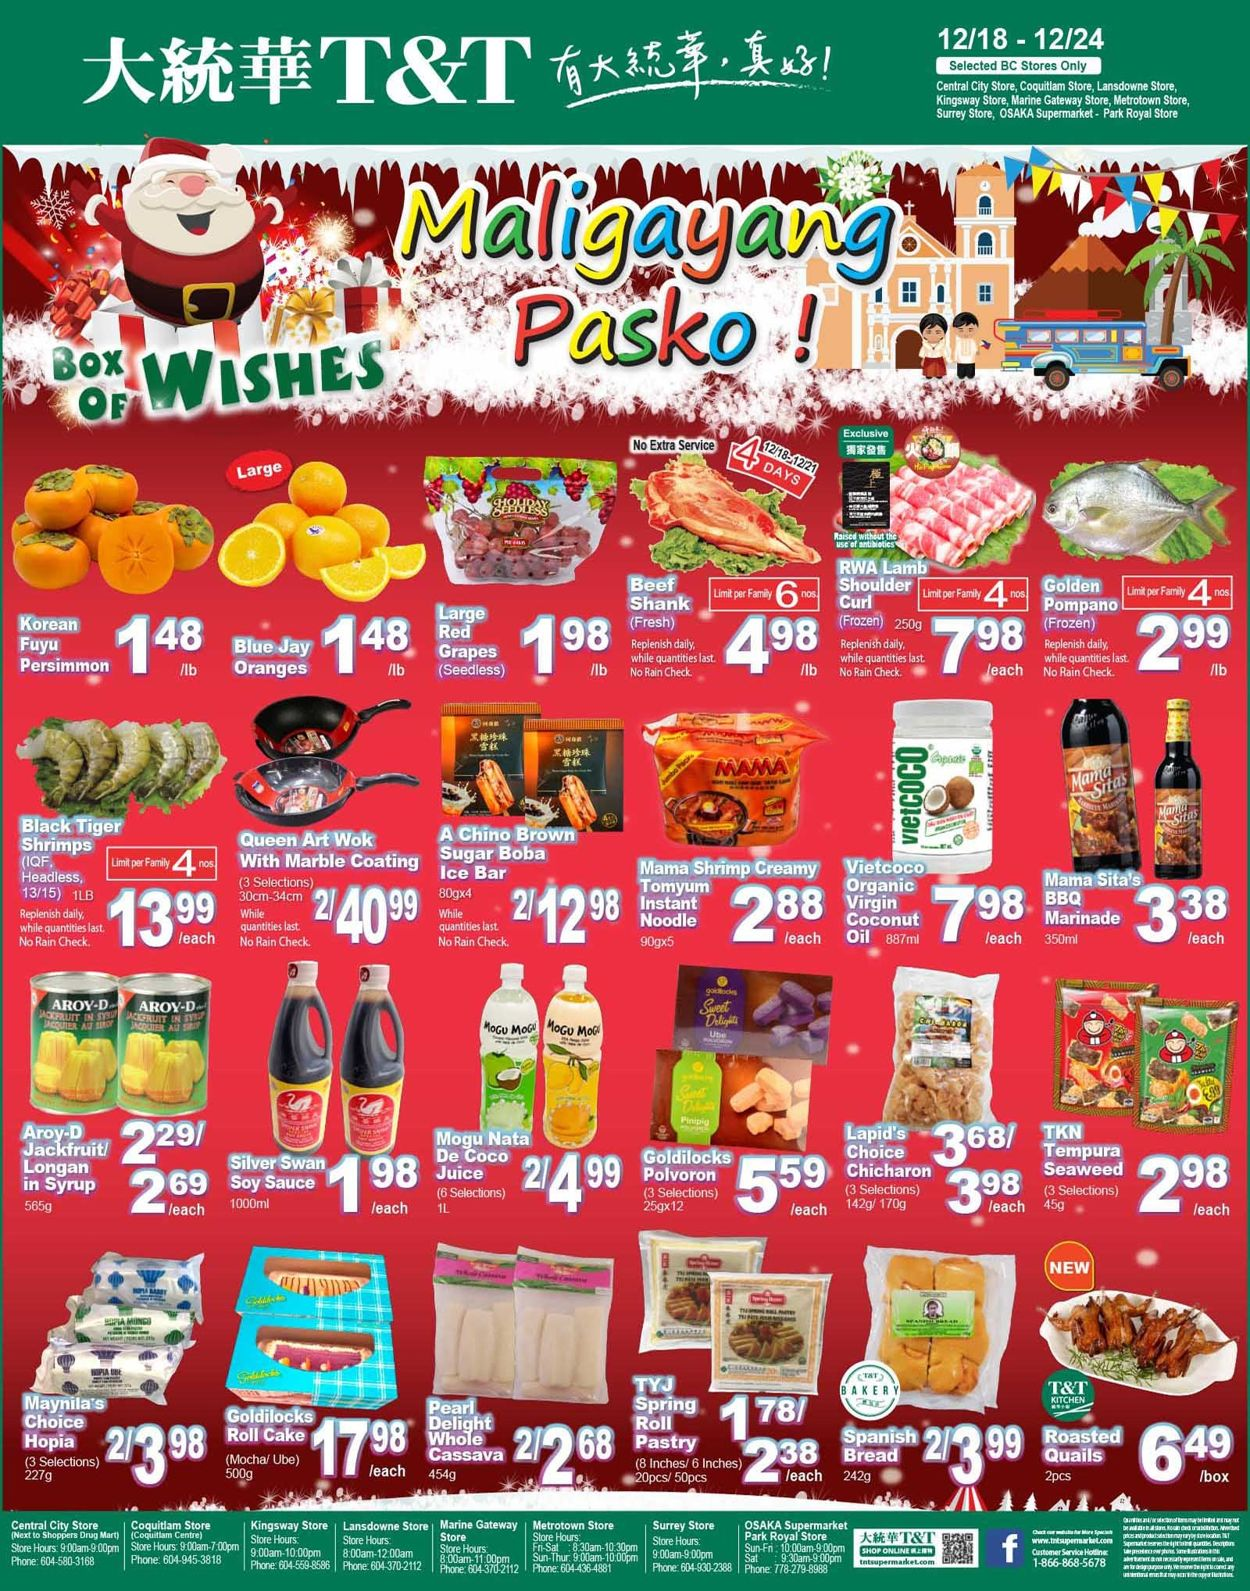 T&T Supermarket Christmas 2020 - British Columbia Flyer - 12/18-12/24/2020 (Page 4)